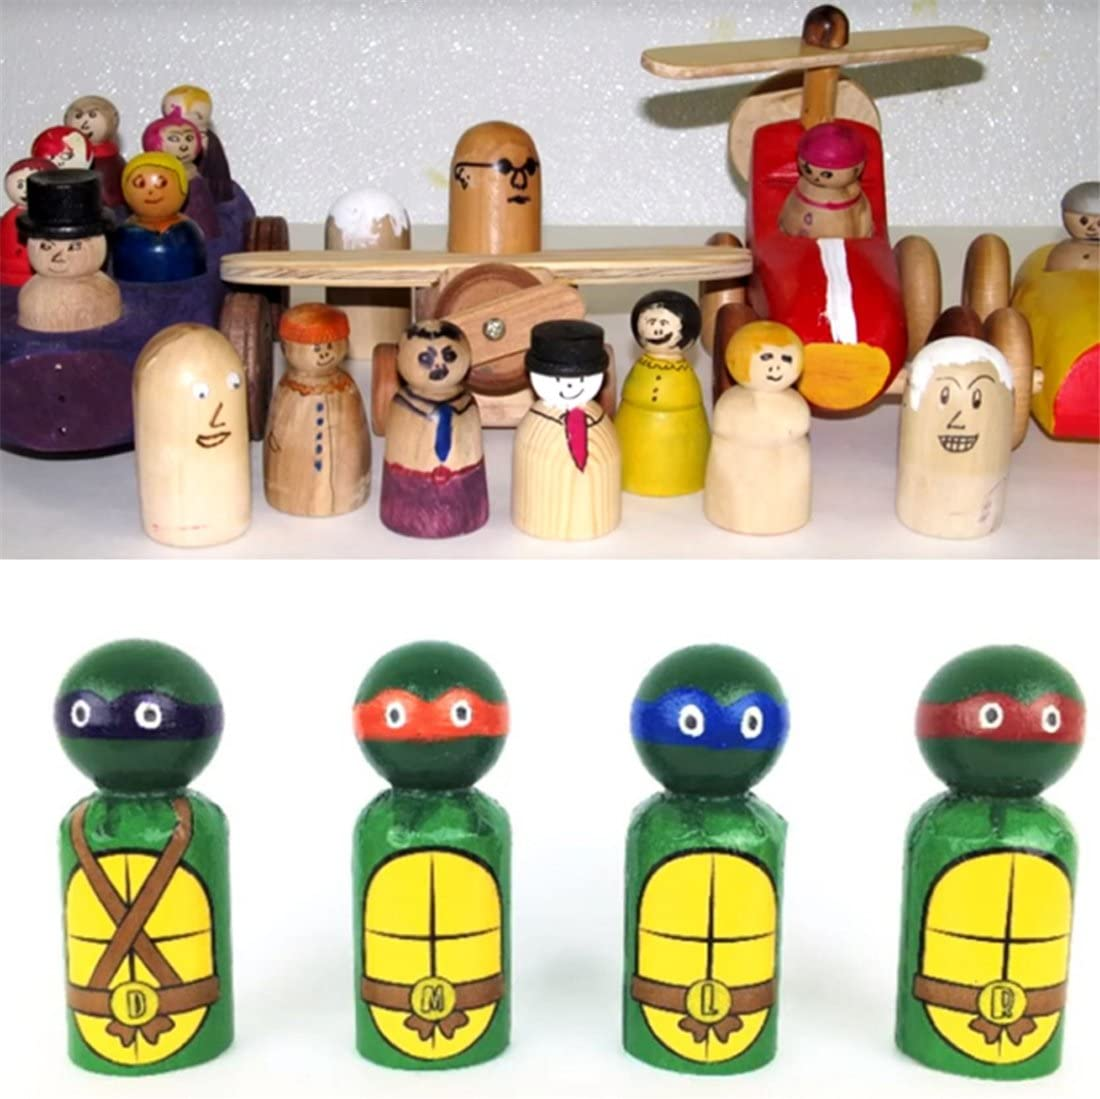 1.38 Solid Hard Nature Unfinished Alta Calidad Gangway Ready Paint o Stained Wooden Doll ni/ña Color madera 100pcs Coskiss 100pcs Madera Personas 35mm